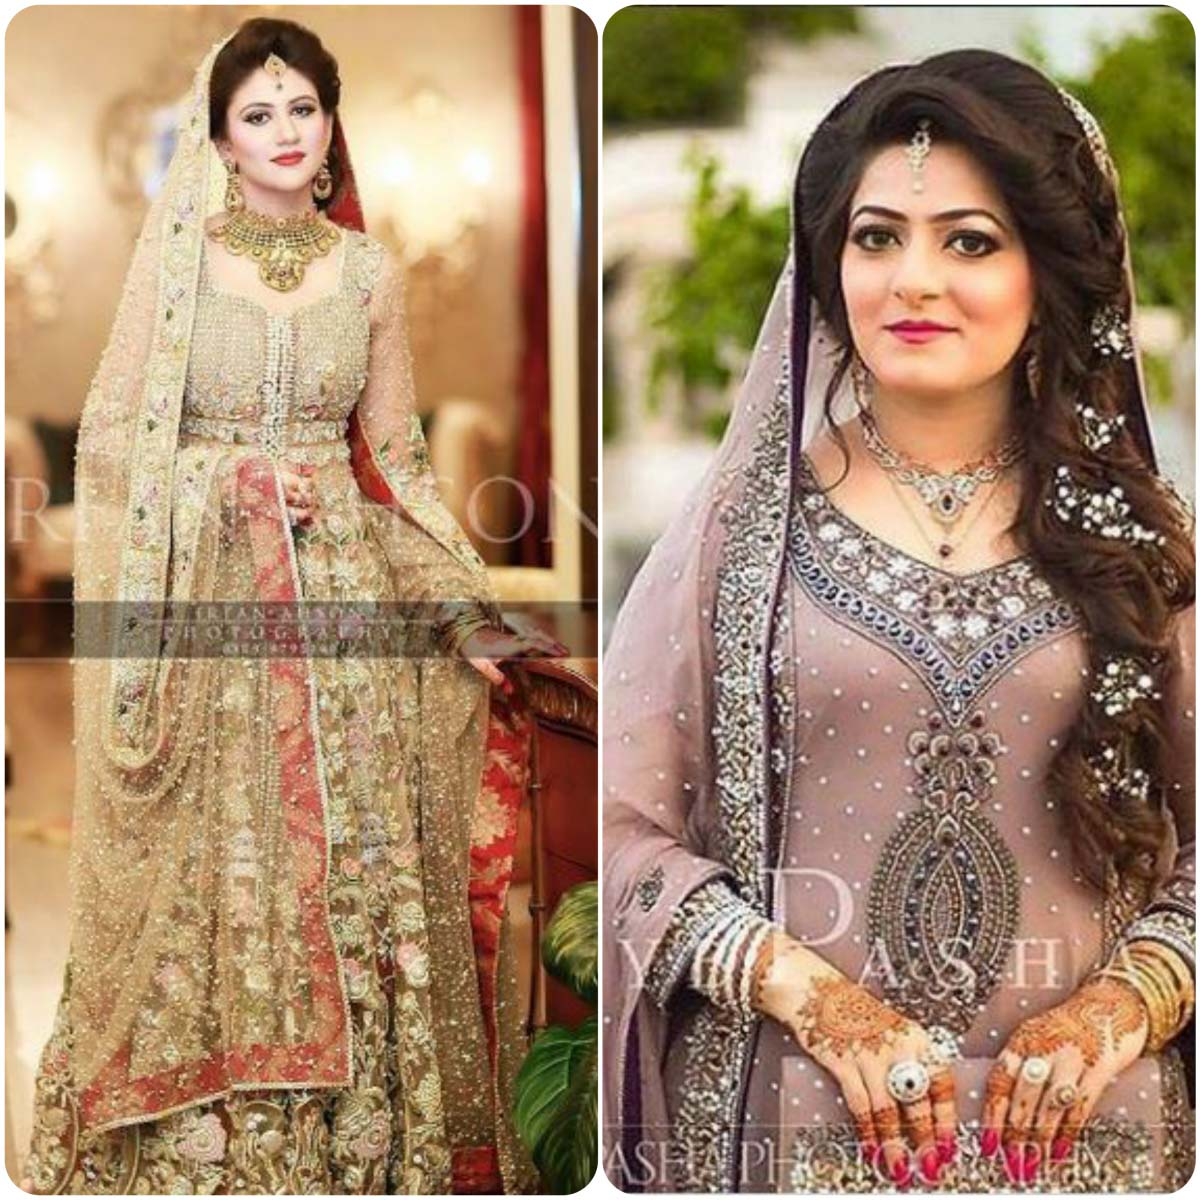 best-bridal-walima-dresses-2017-2018-designs-colors-9